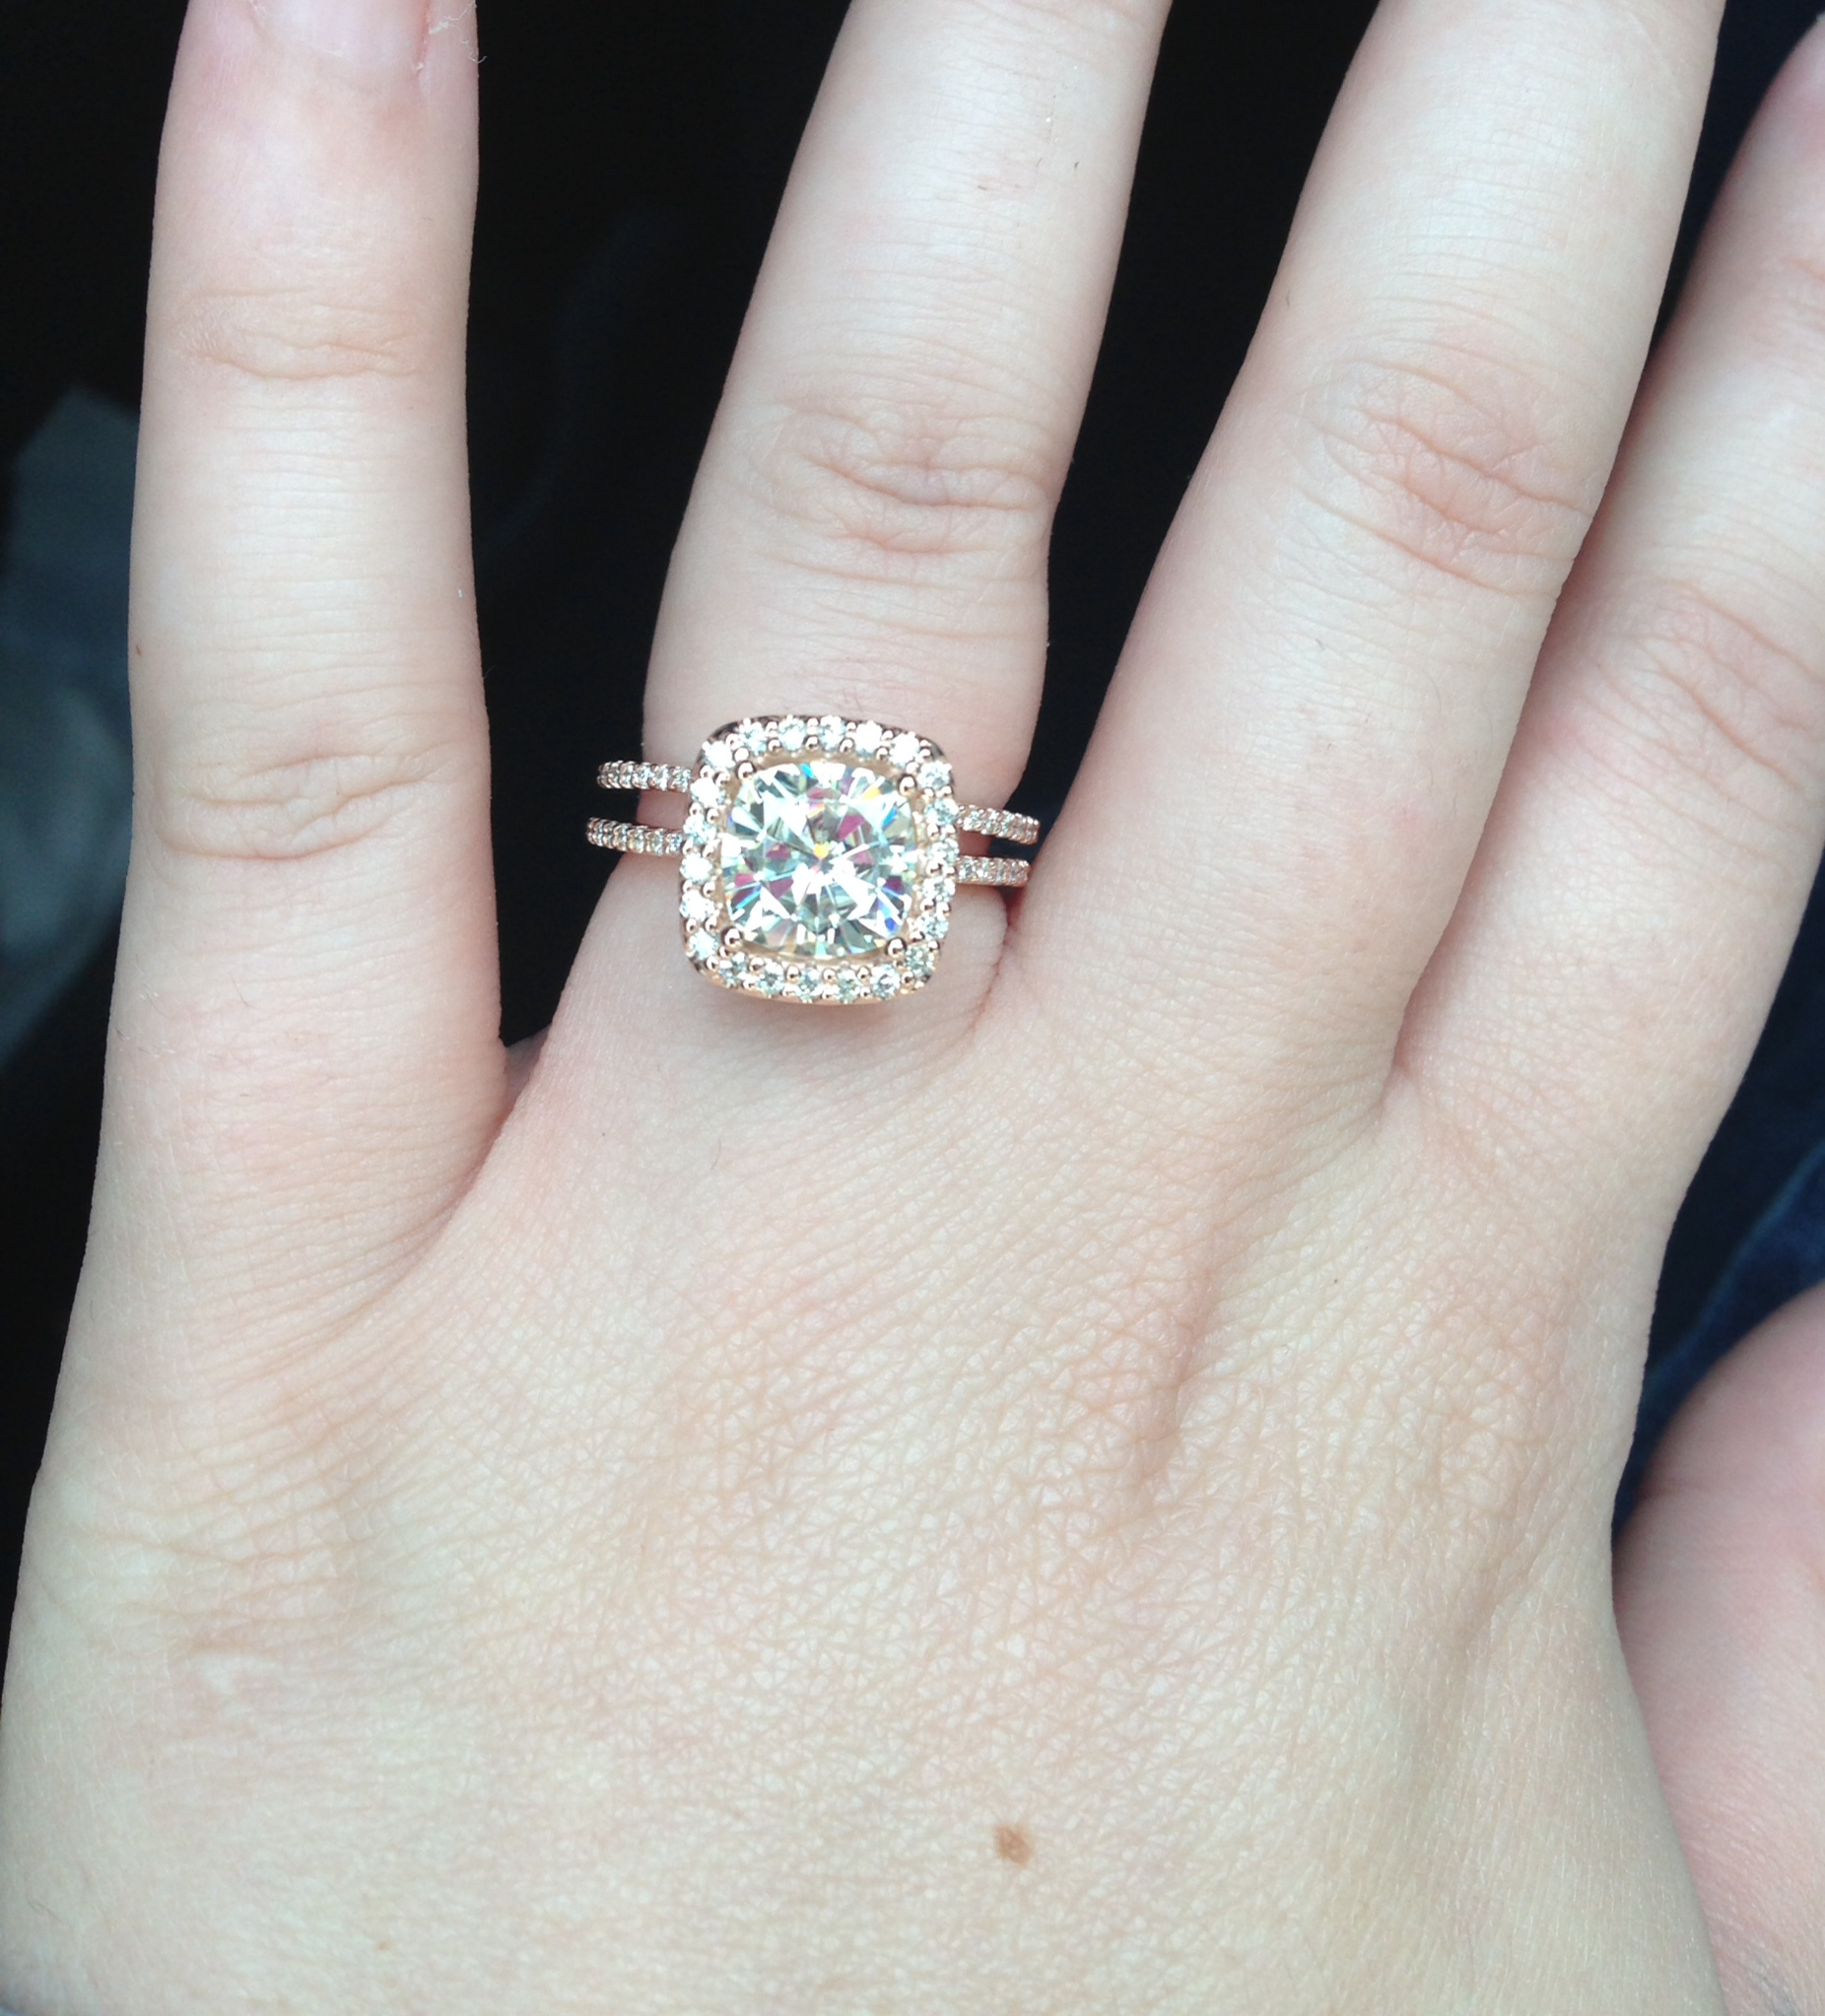 moissanite over diamond all the way mix n match too wedding ring Okay so I am the kinda girl who likes my sparkle and for my 1 year anniversary i knew i wanted to upgrade my ring Love the hubby but the original set